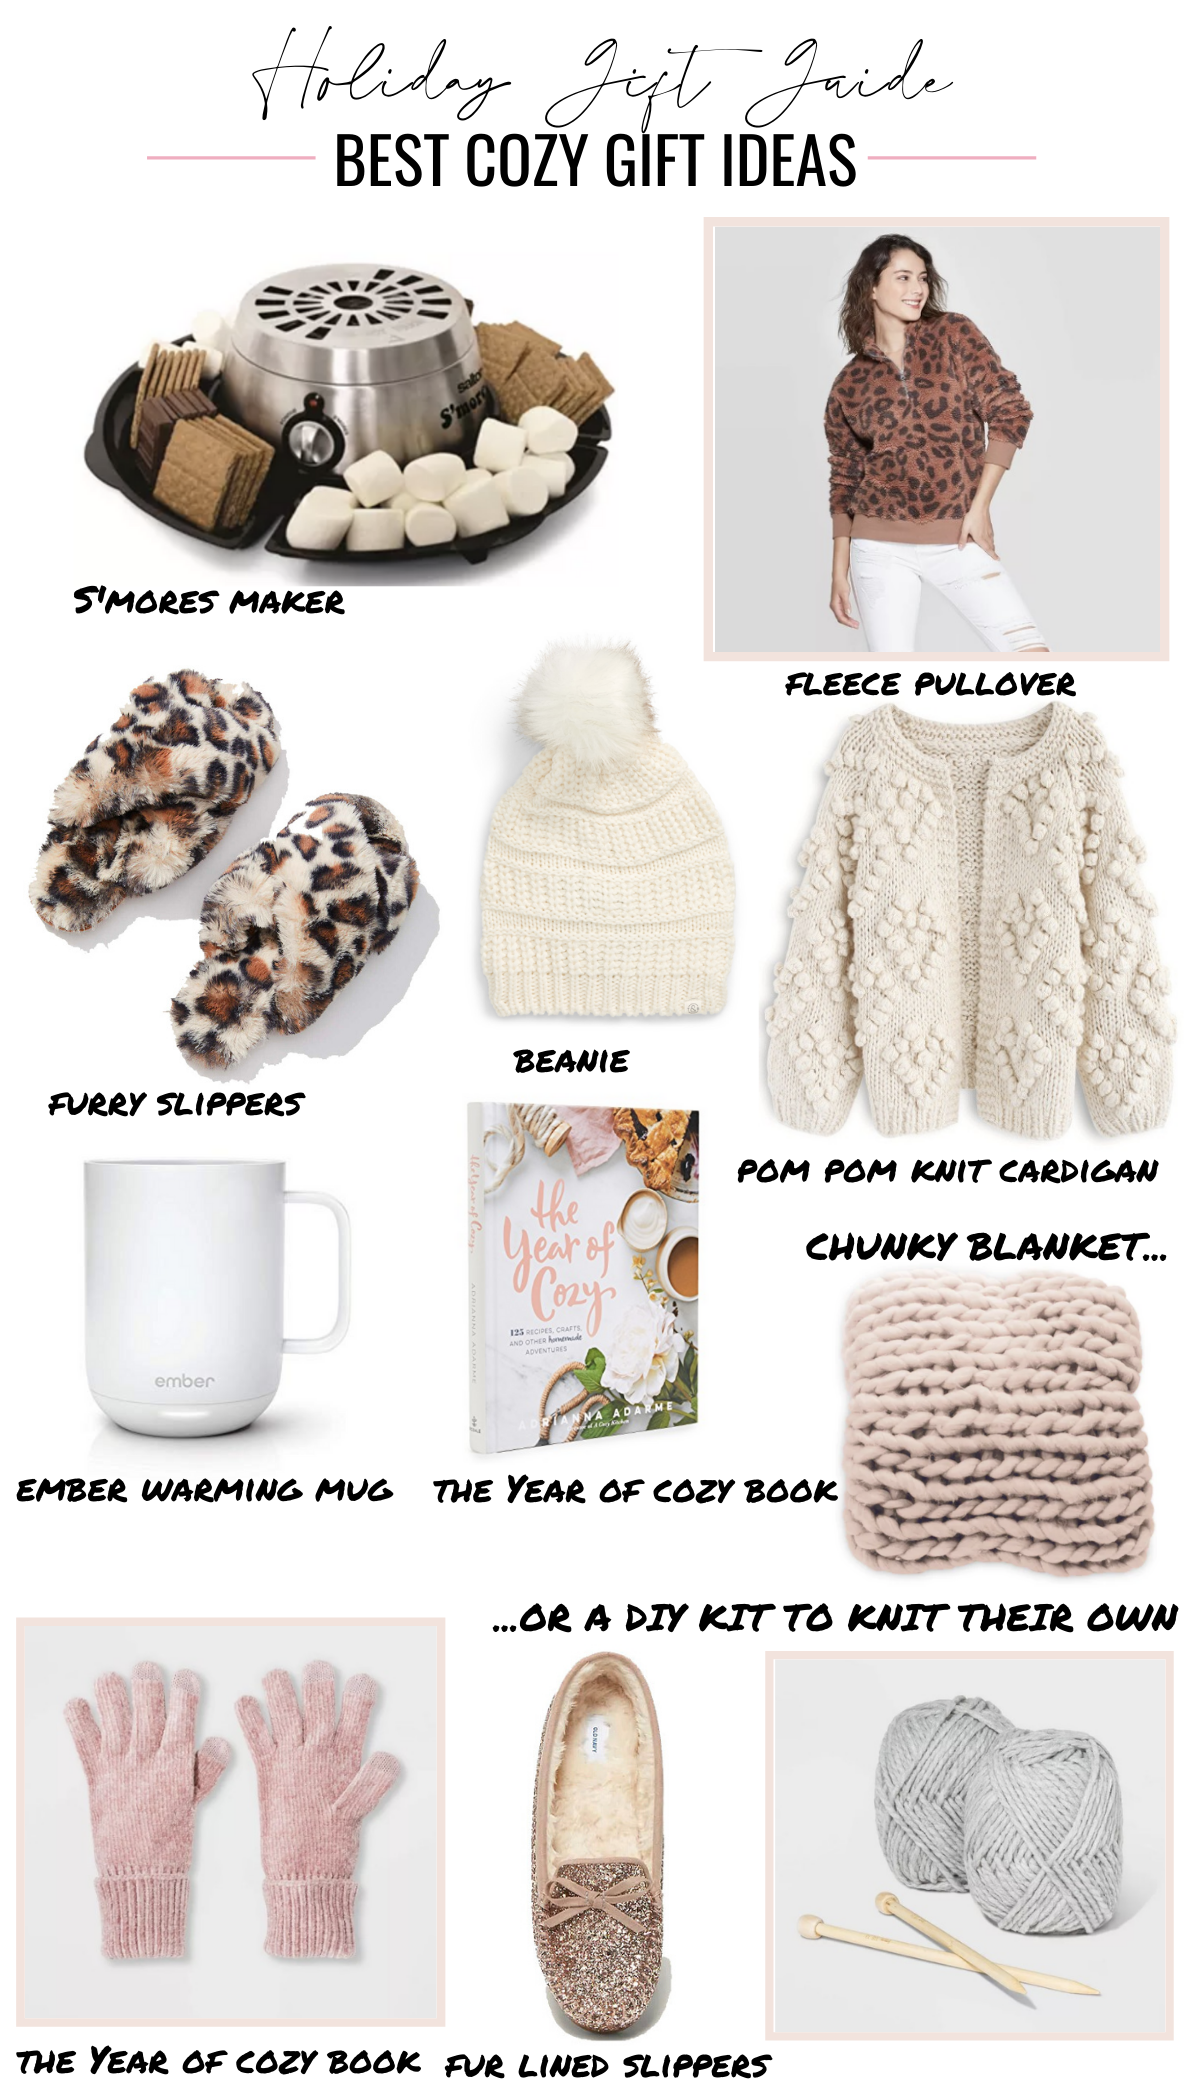 Best-Cozy-Gift-Ideas-Holiday-Gift-Guide-Cozy-Gifts